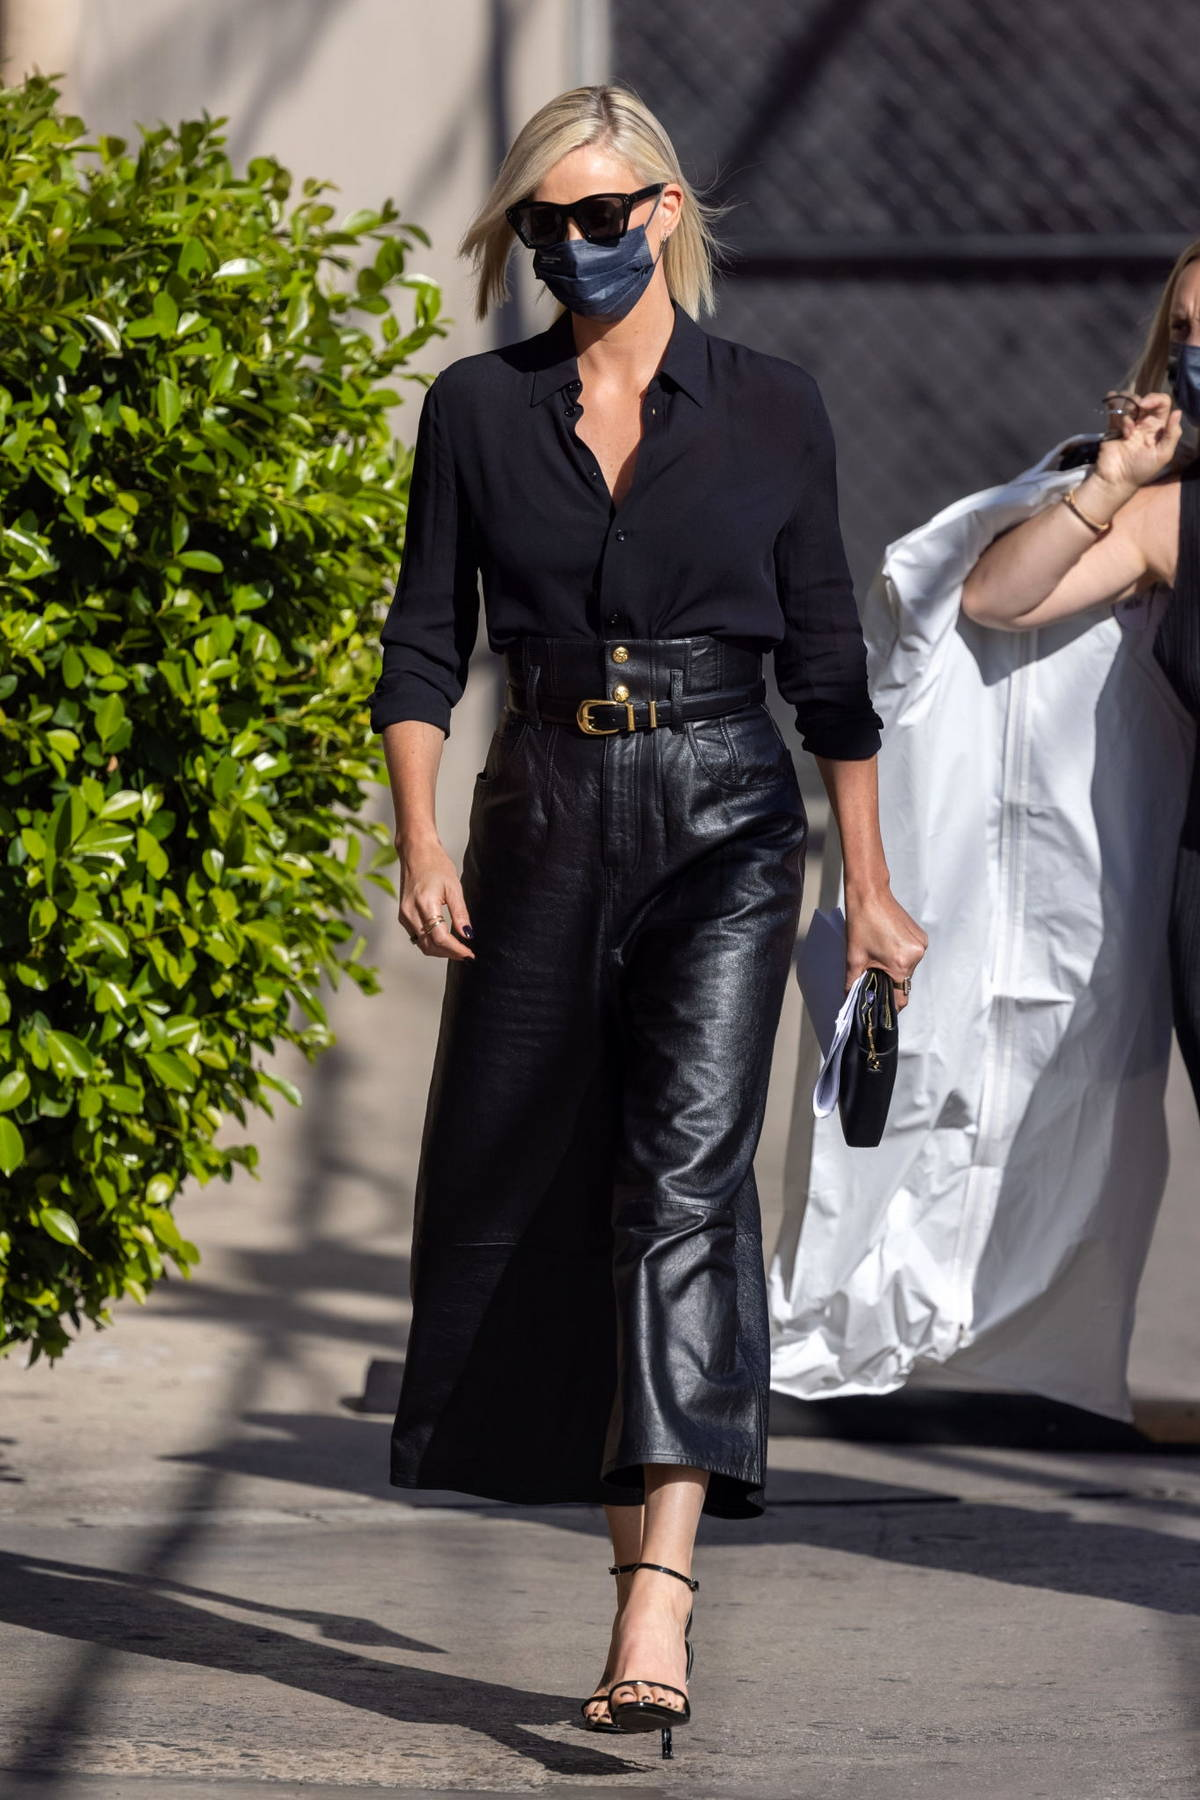 Charlize Theron rocks all-black for her appearance on 'Jimmy Kimmel Live' in Hollywood, California